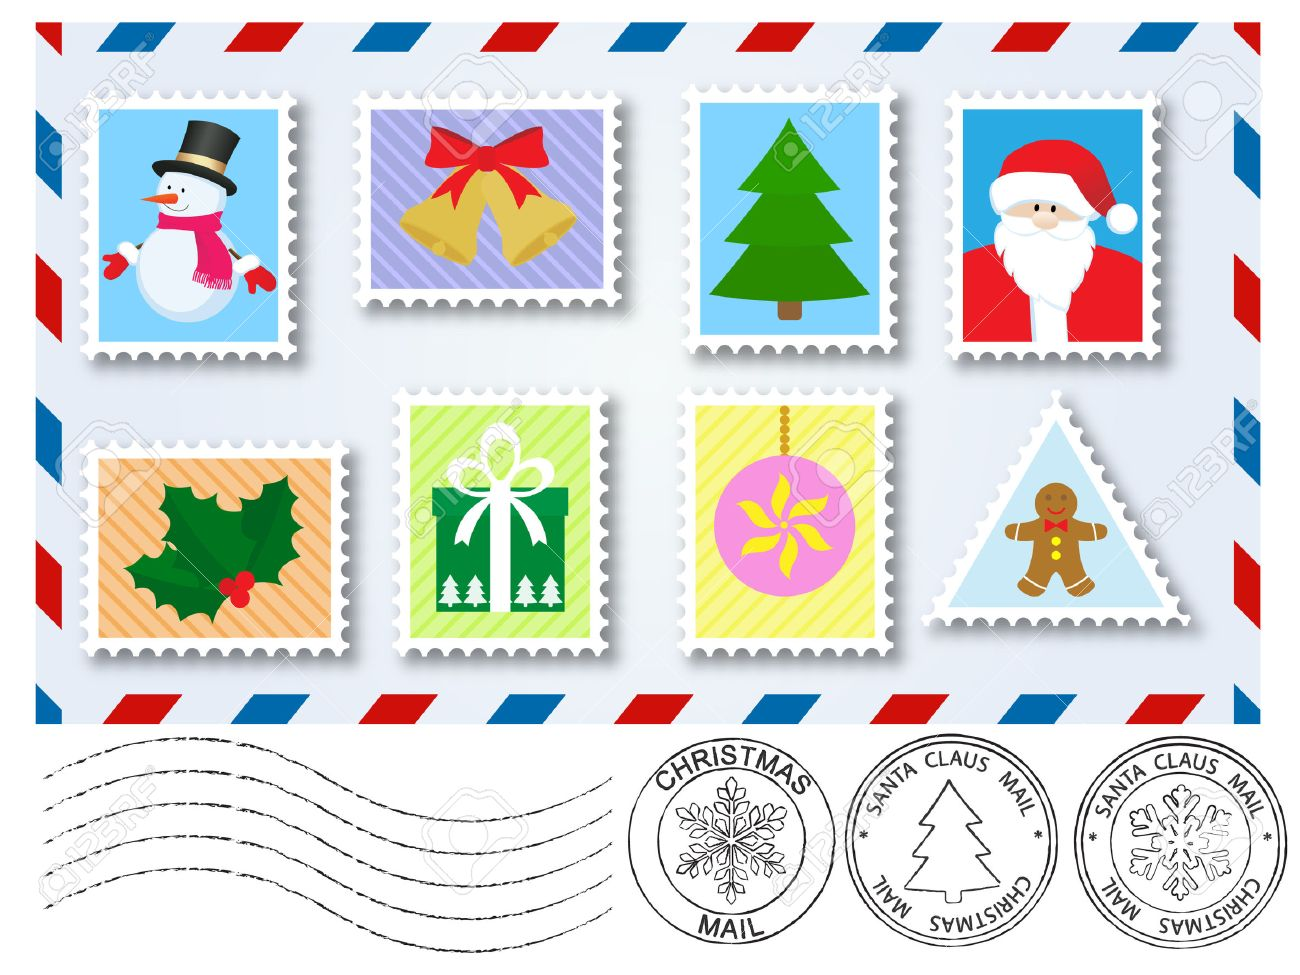 vector decoration elements stamps and postage marks for letter to santa claus